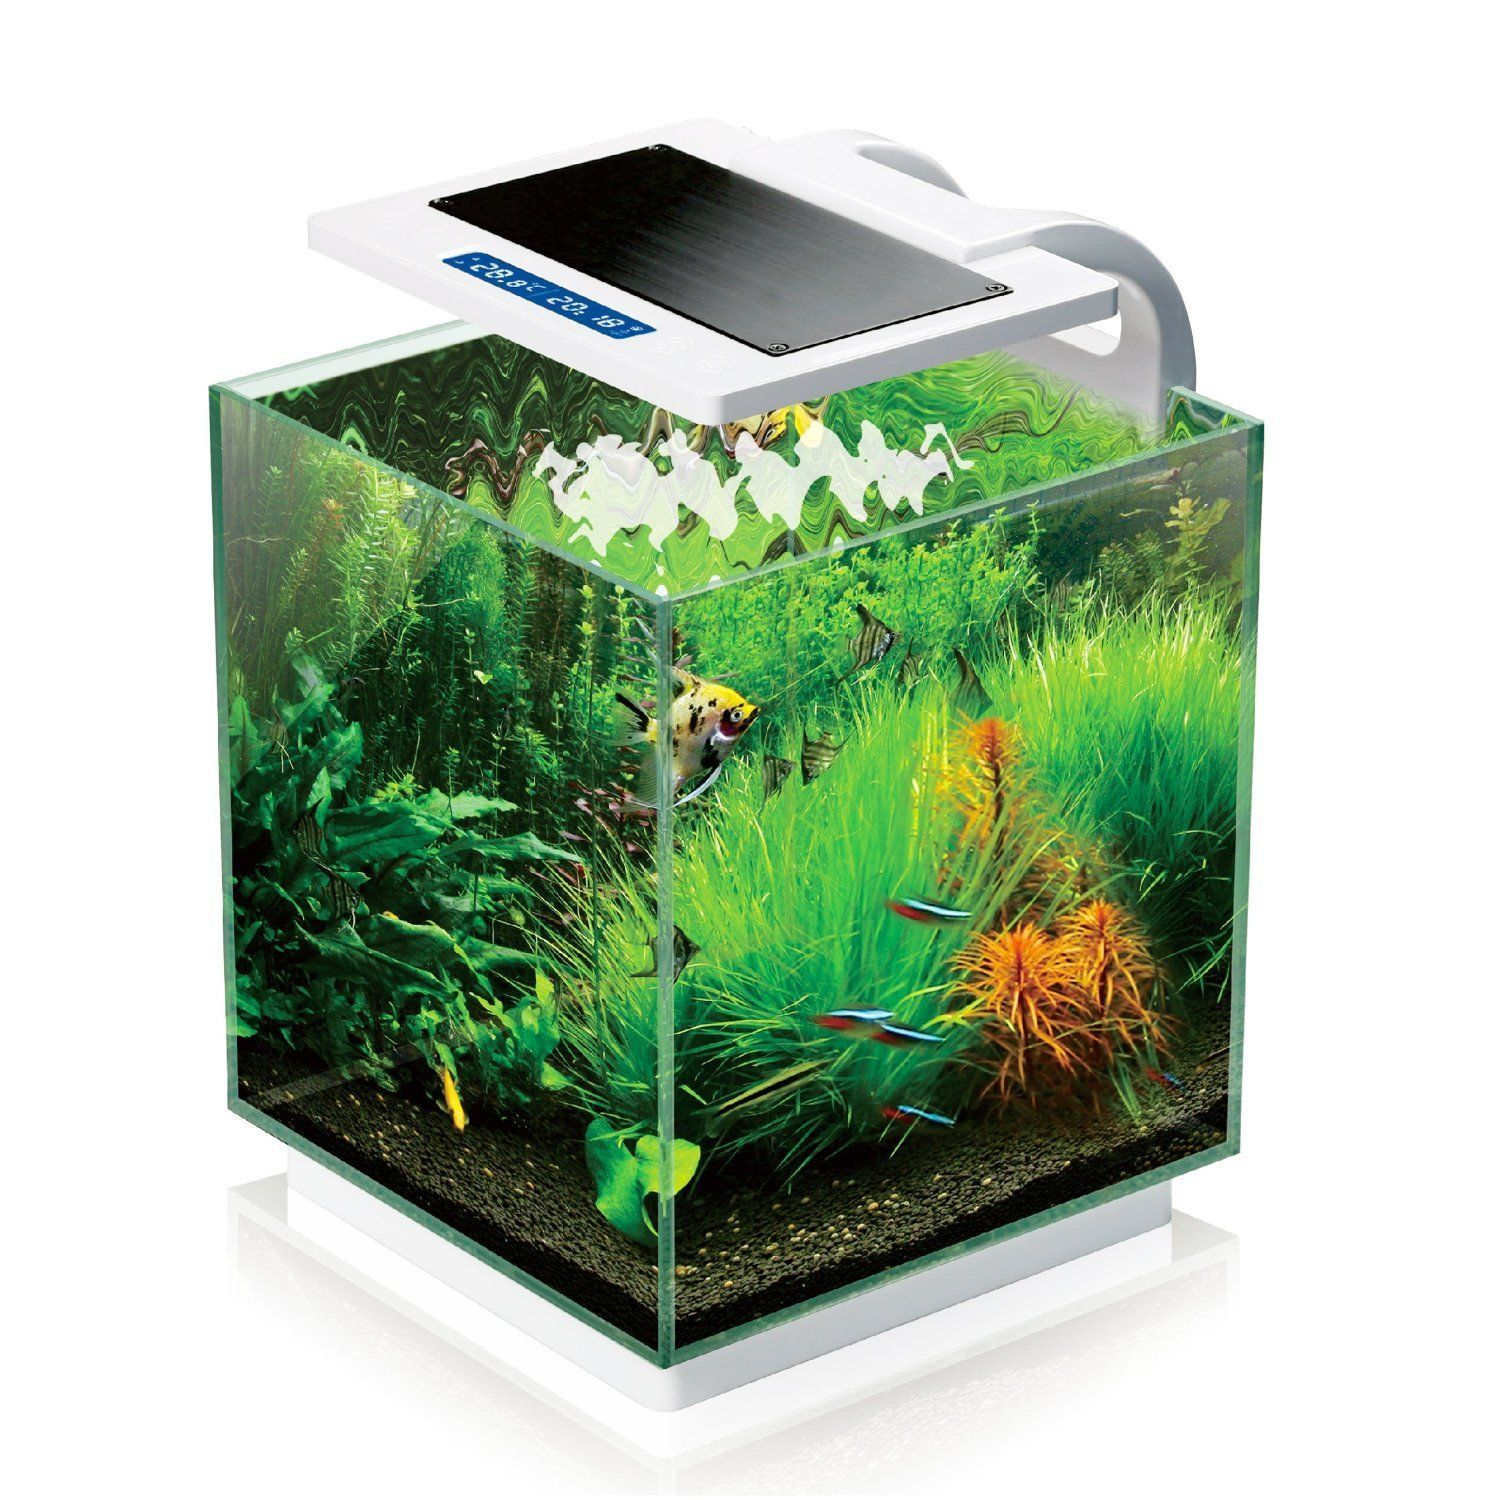 Nano led aquarium fish tank lighting - Aquarium Glass Fish Tank 4 Gallons 10 X 10 X 10 Led Light Filter Nano Kit New